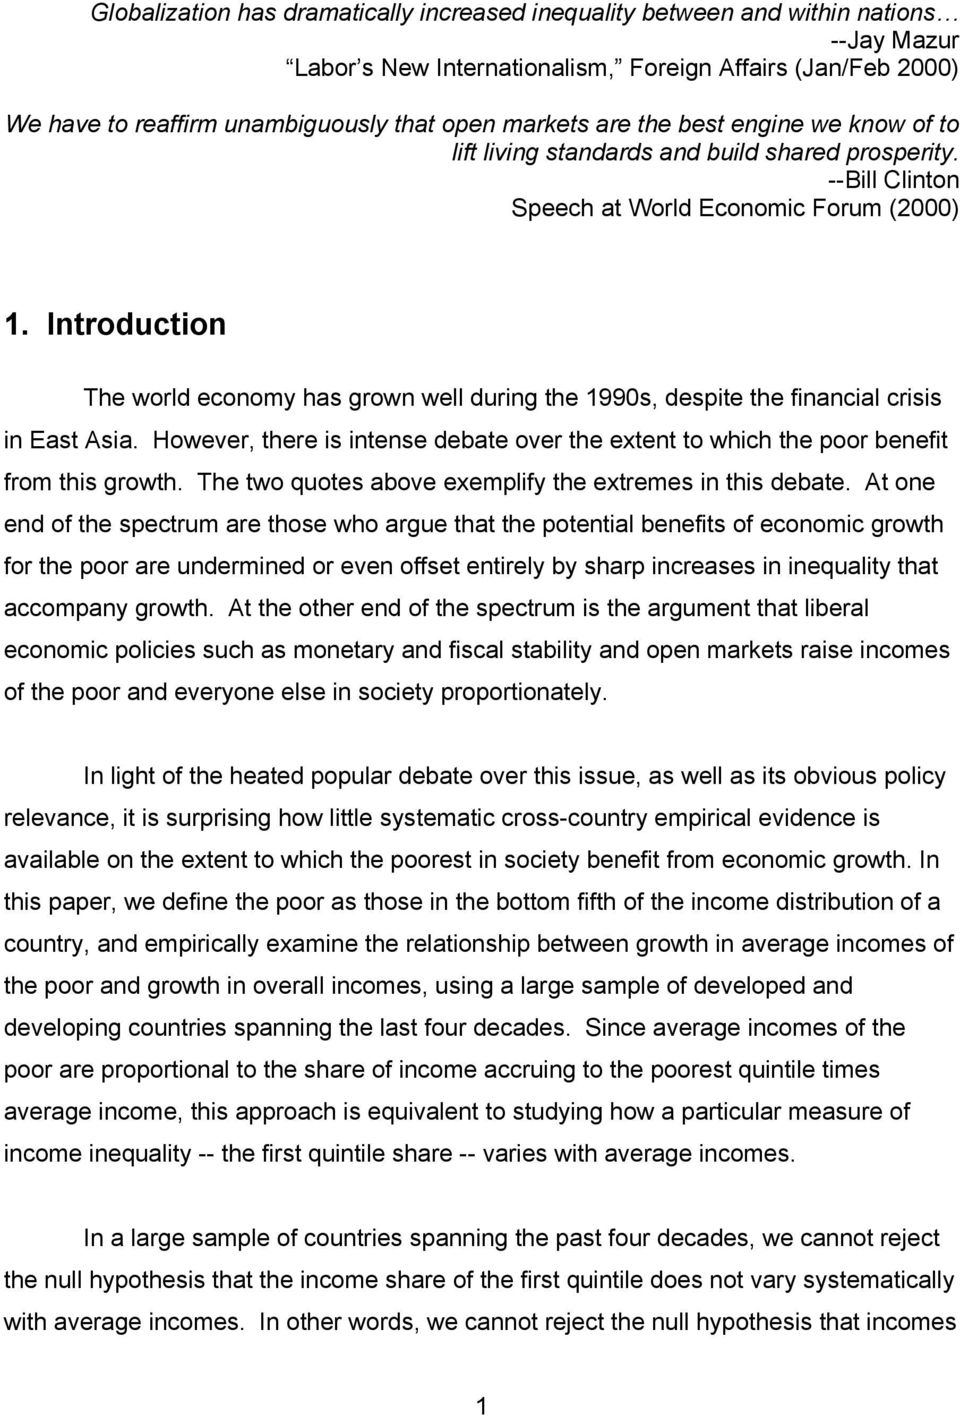 Introduction The world economy has grown well during the 1990s, despite the financial crisis in East Asia. However, there is intense debate over the extent to which the poor benefit from this growth.